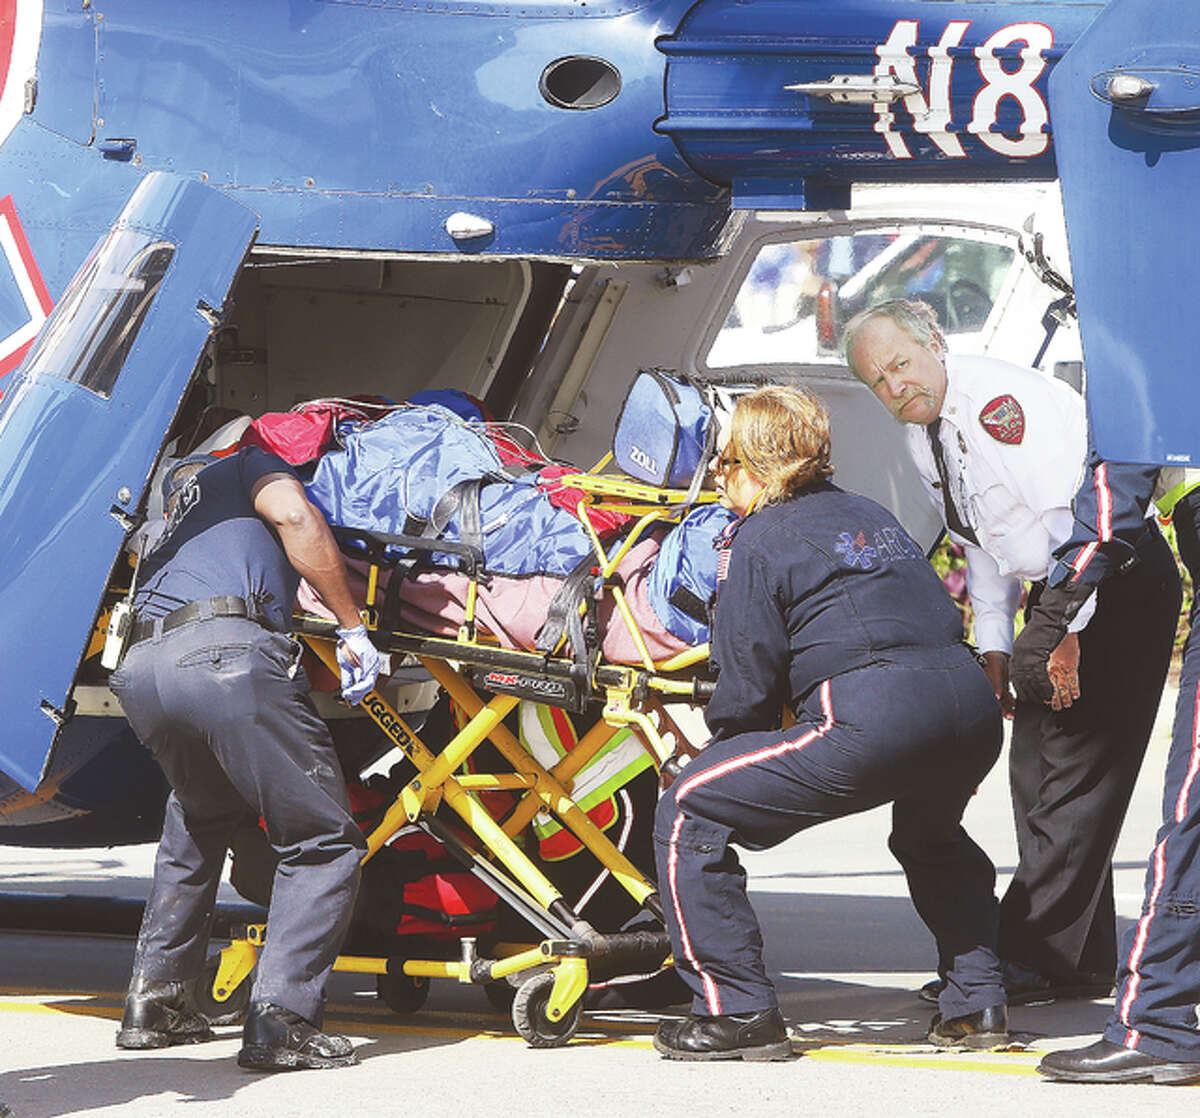 ARCH Air Medical Services Inc. flight nurses and Alton Battalion Chief Brad Sweetman, right, load the forklift driver into the helicopter for an airlift to St. Louis.